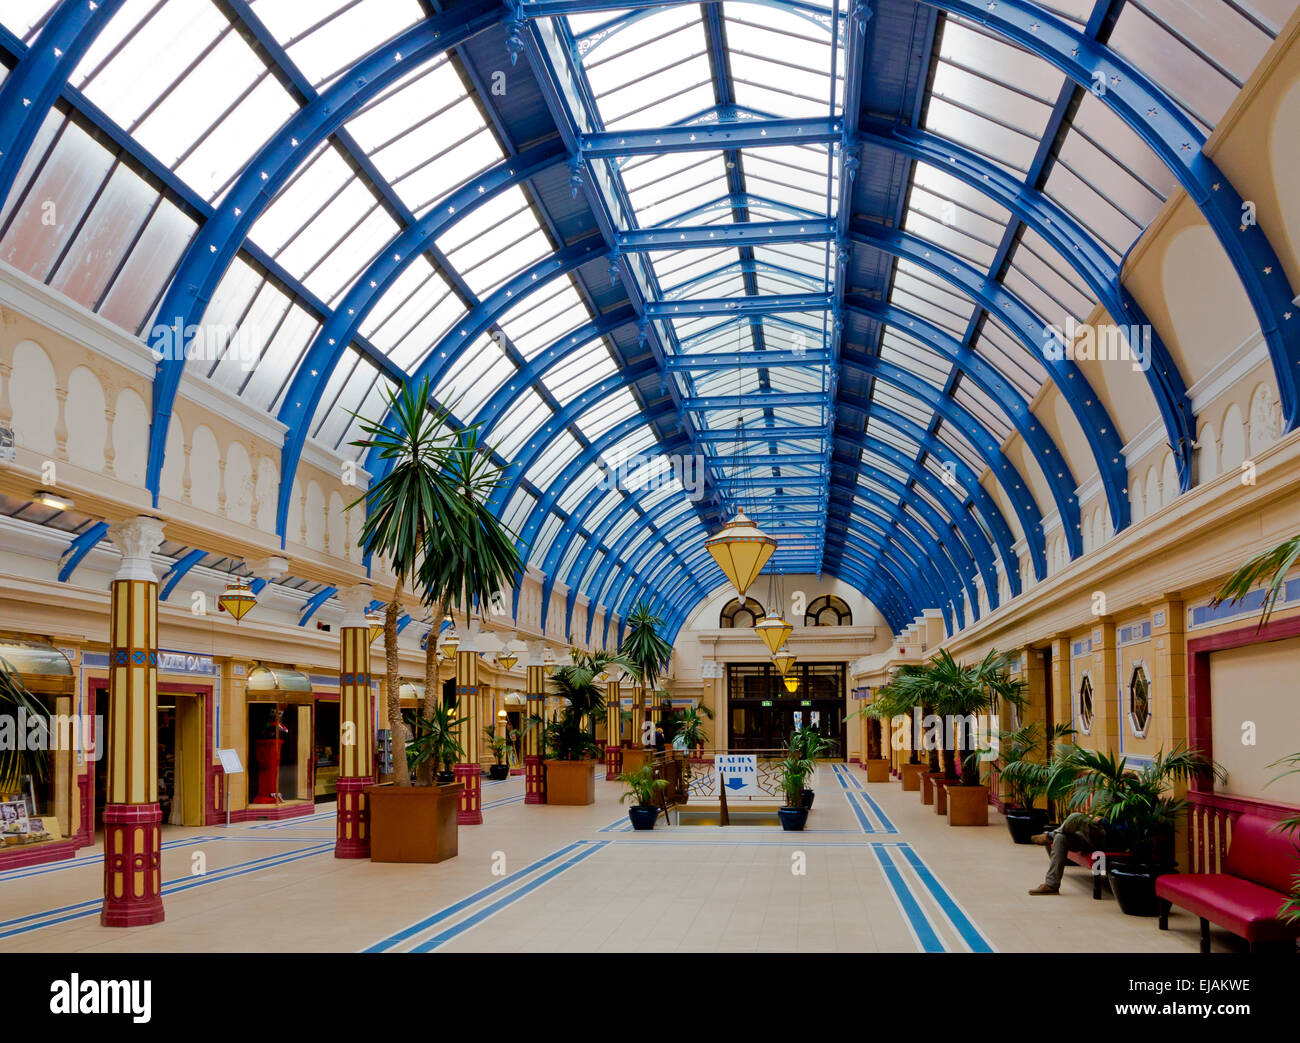 the art deco arcade at the entrance to blackpool winter gardens an